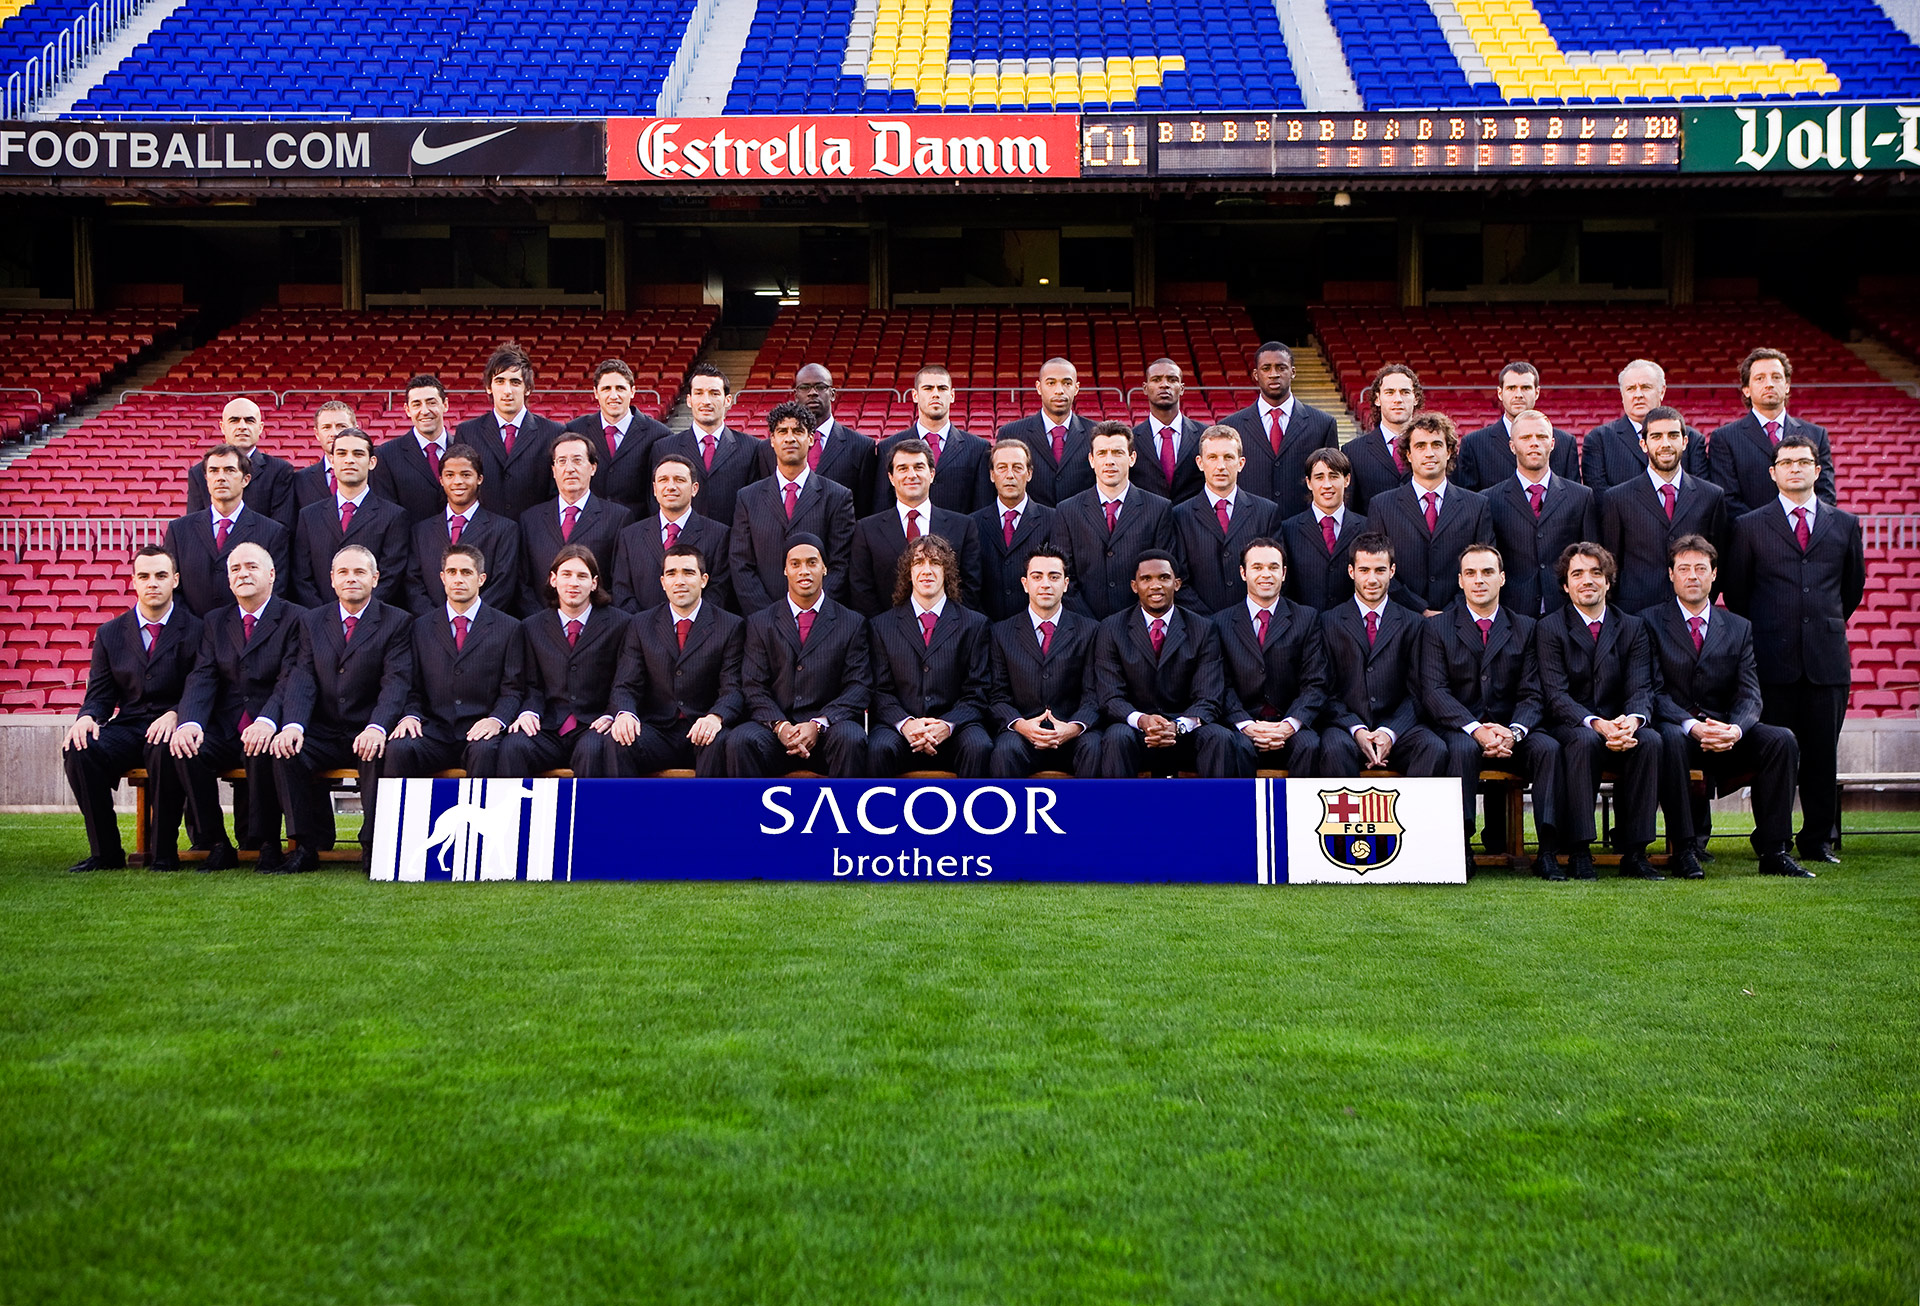 Sacoor Brothers Sponsors football teams and celebrities